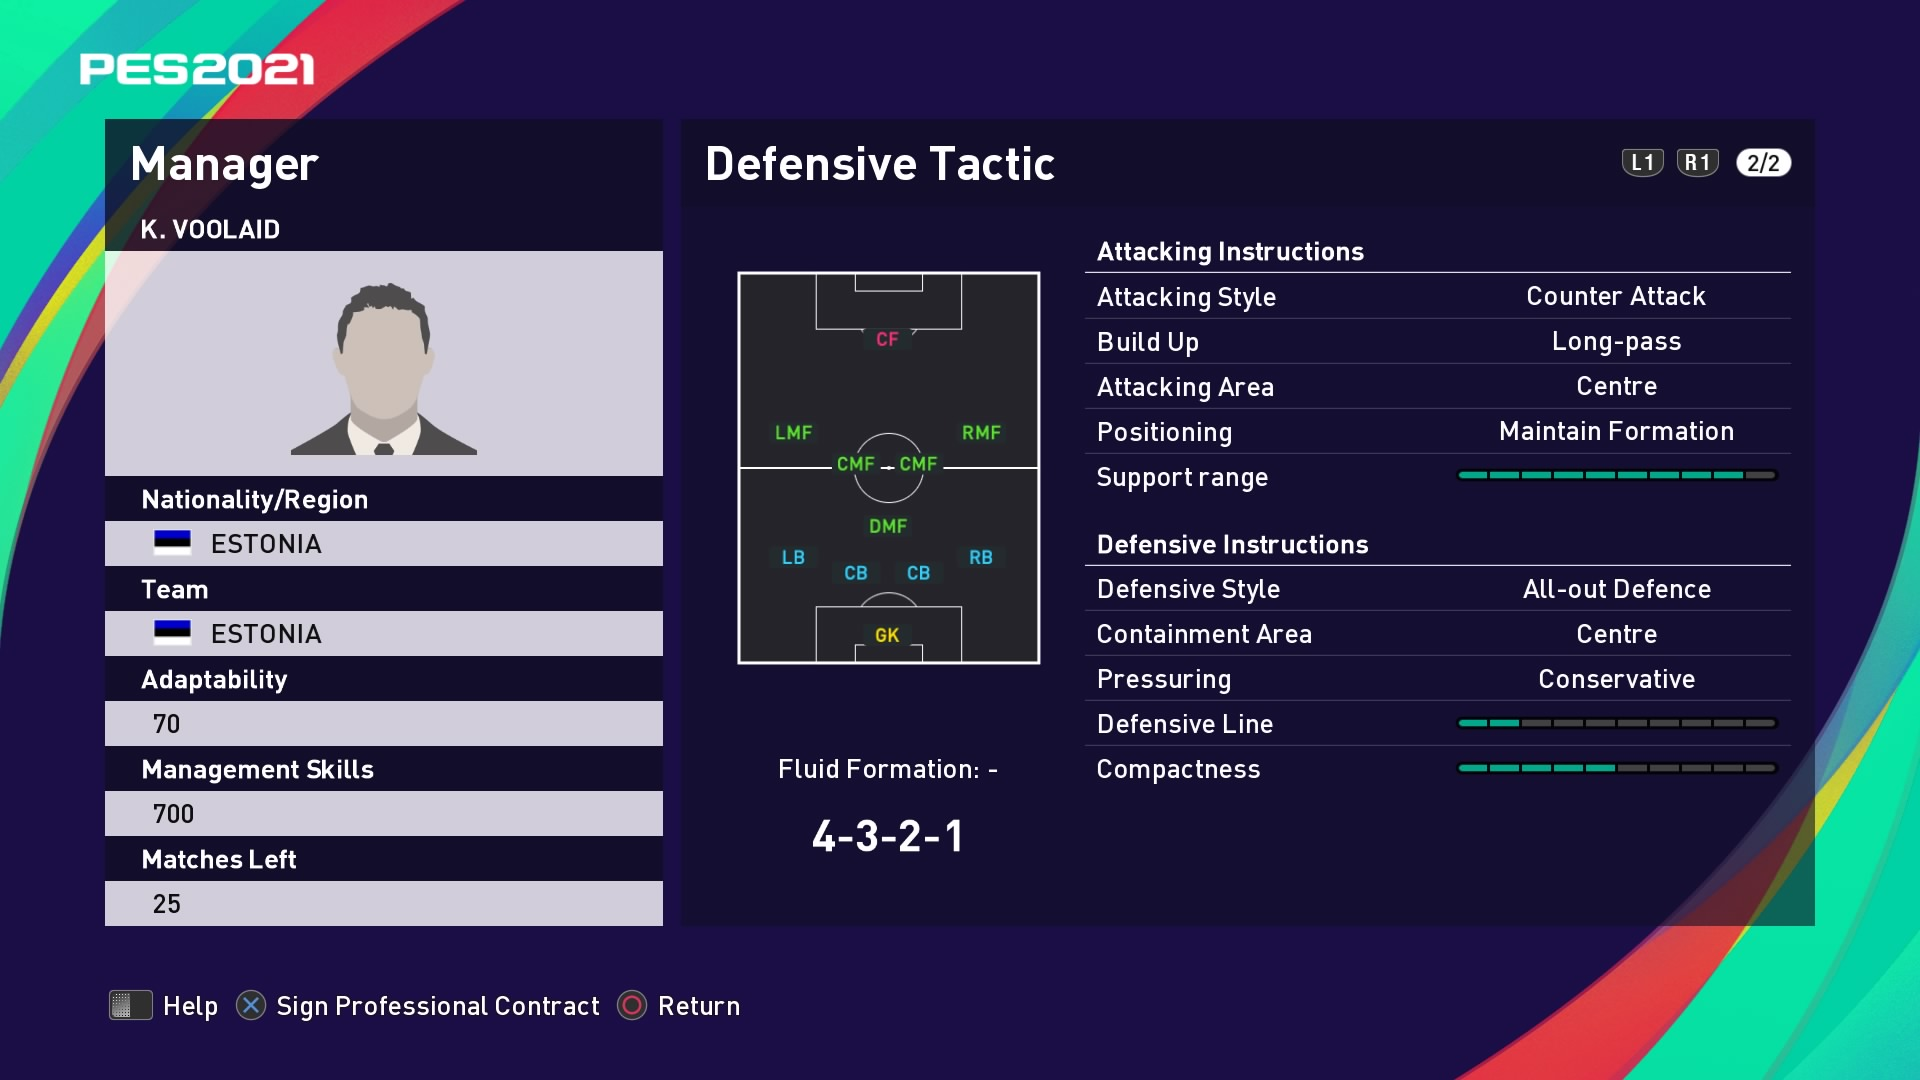 K. Voolaid (Karel Voolaid) Defensive Tactic in PES 2021 myClub